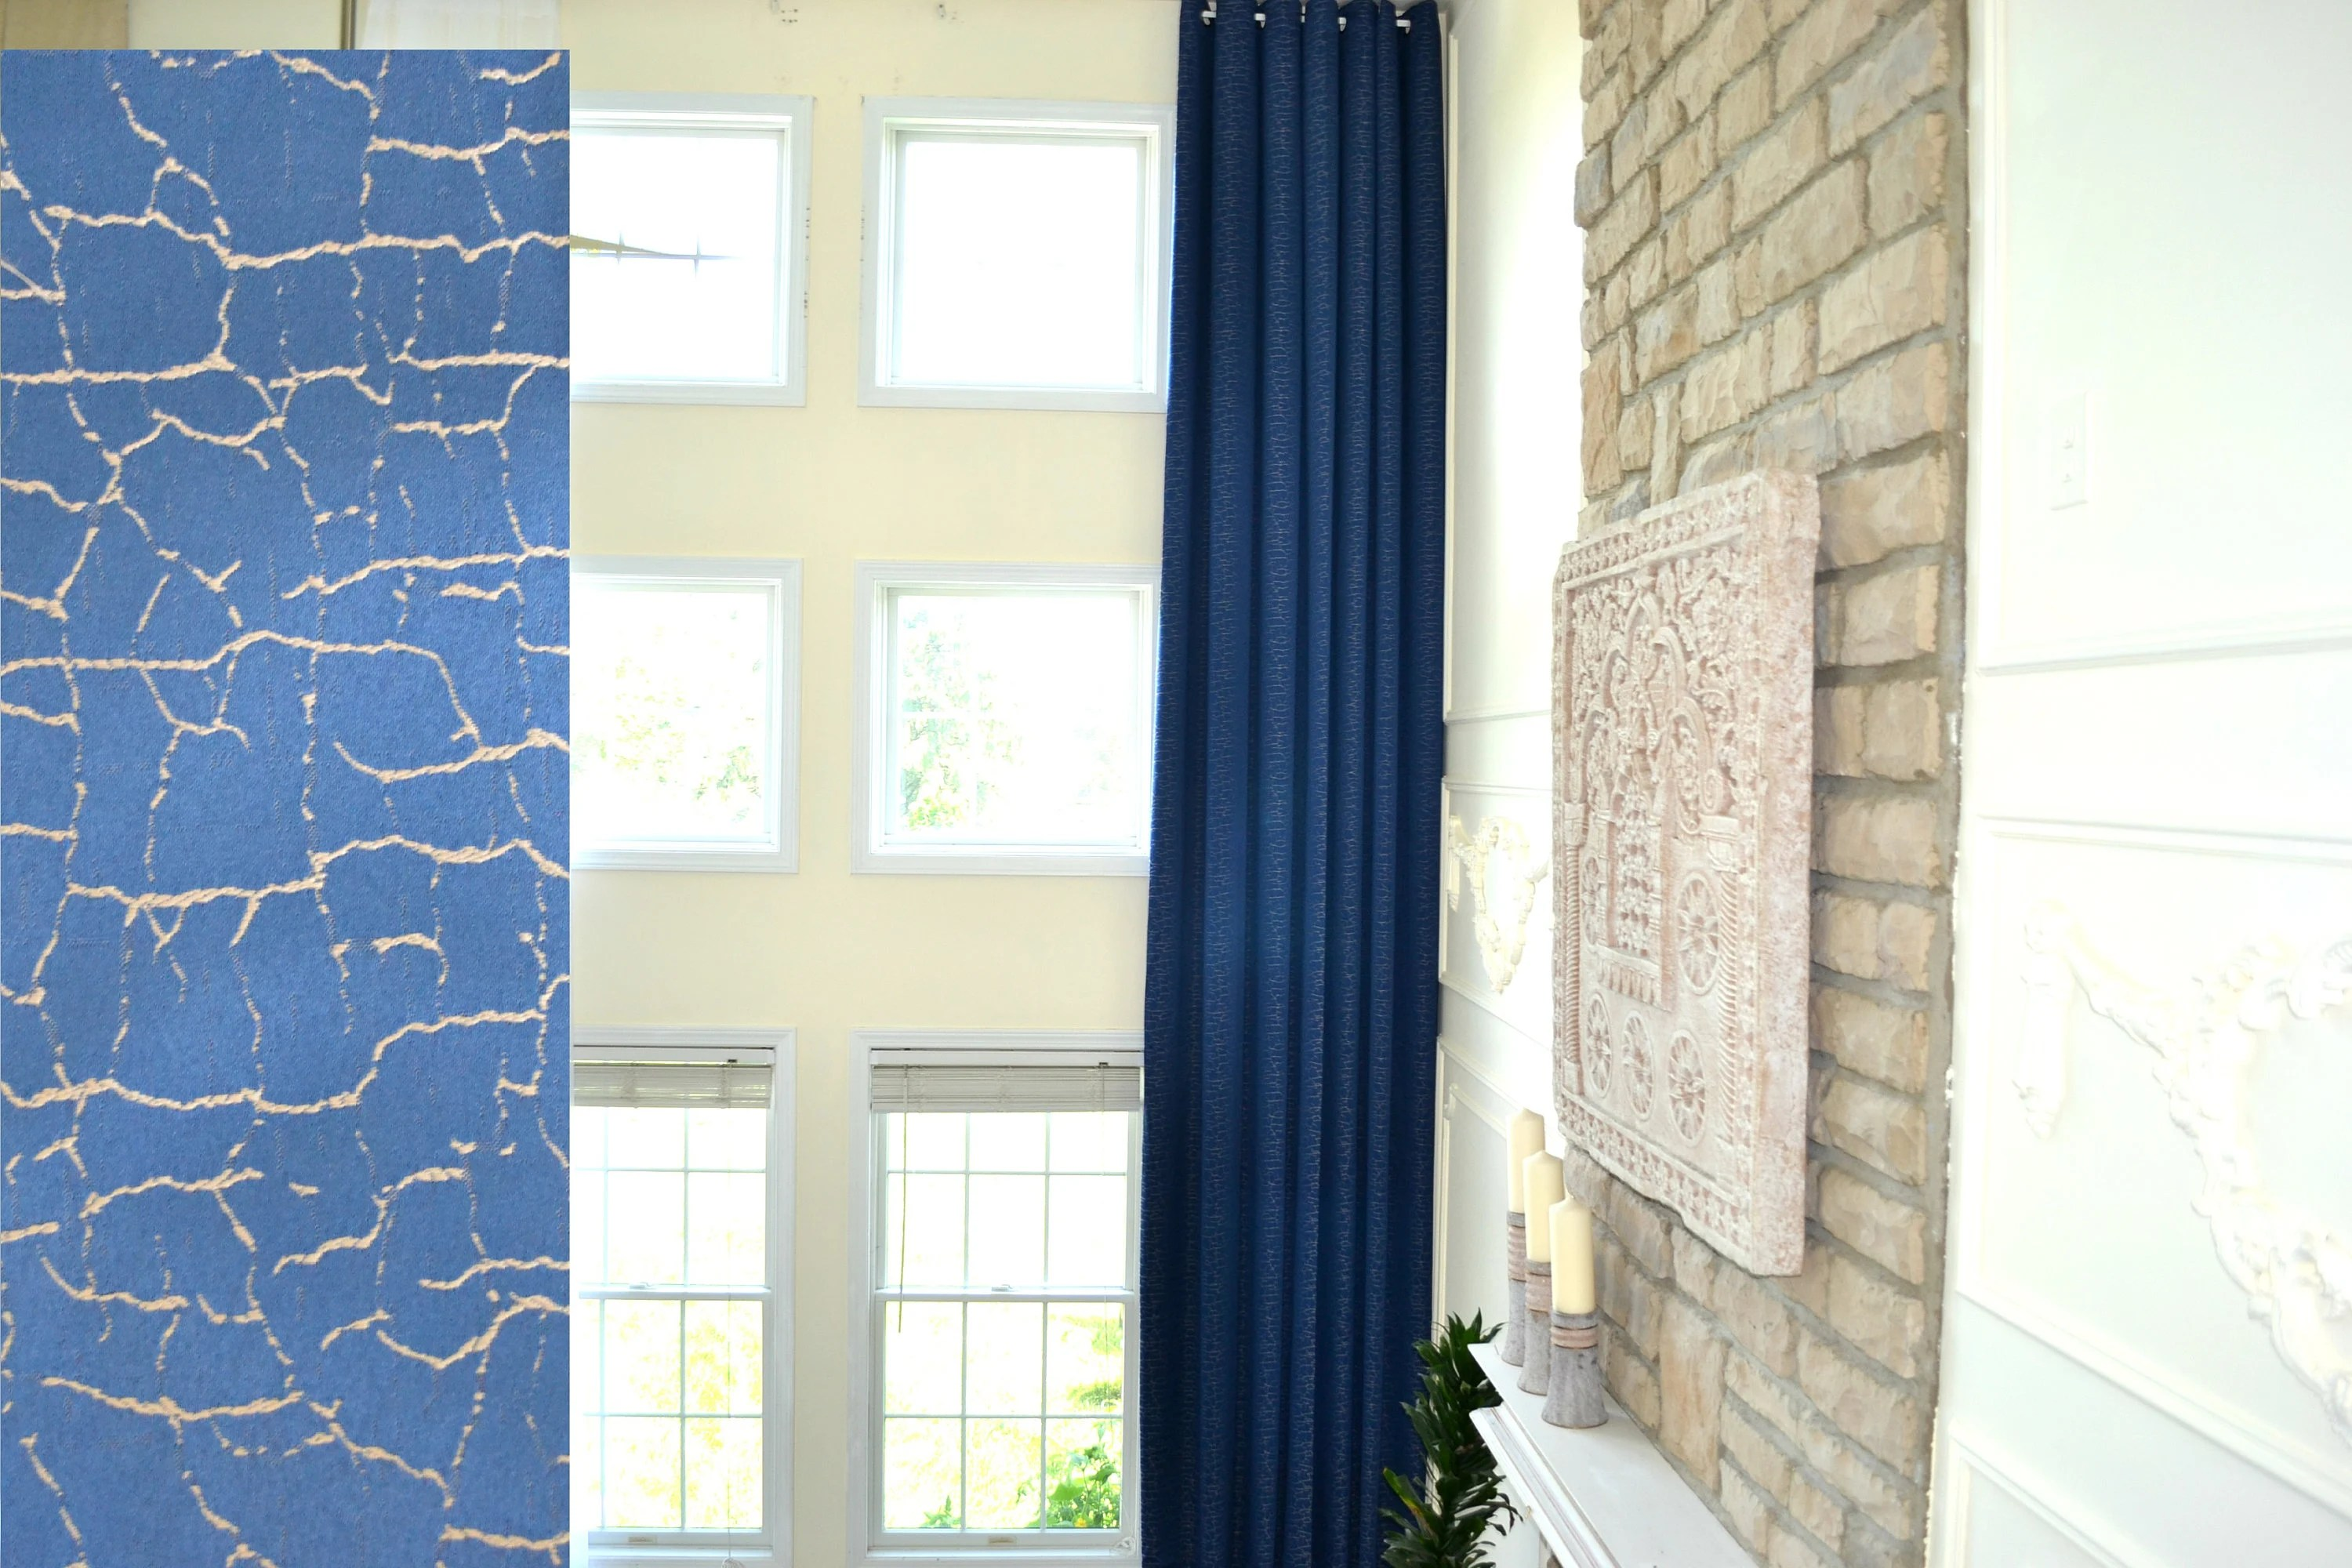 Jacquard Curtains Extra Long Dark Blue Jacquard Curtain Wirh Crack Pattern With Grommet Top 16 17 18 20 Feet 100 Inches Wide